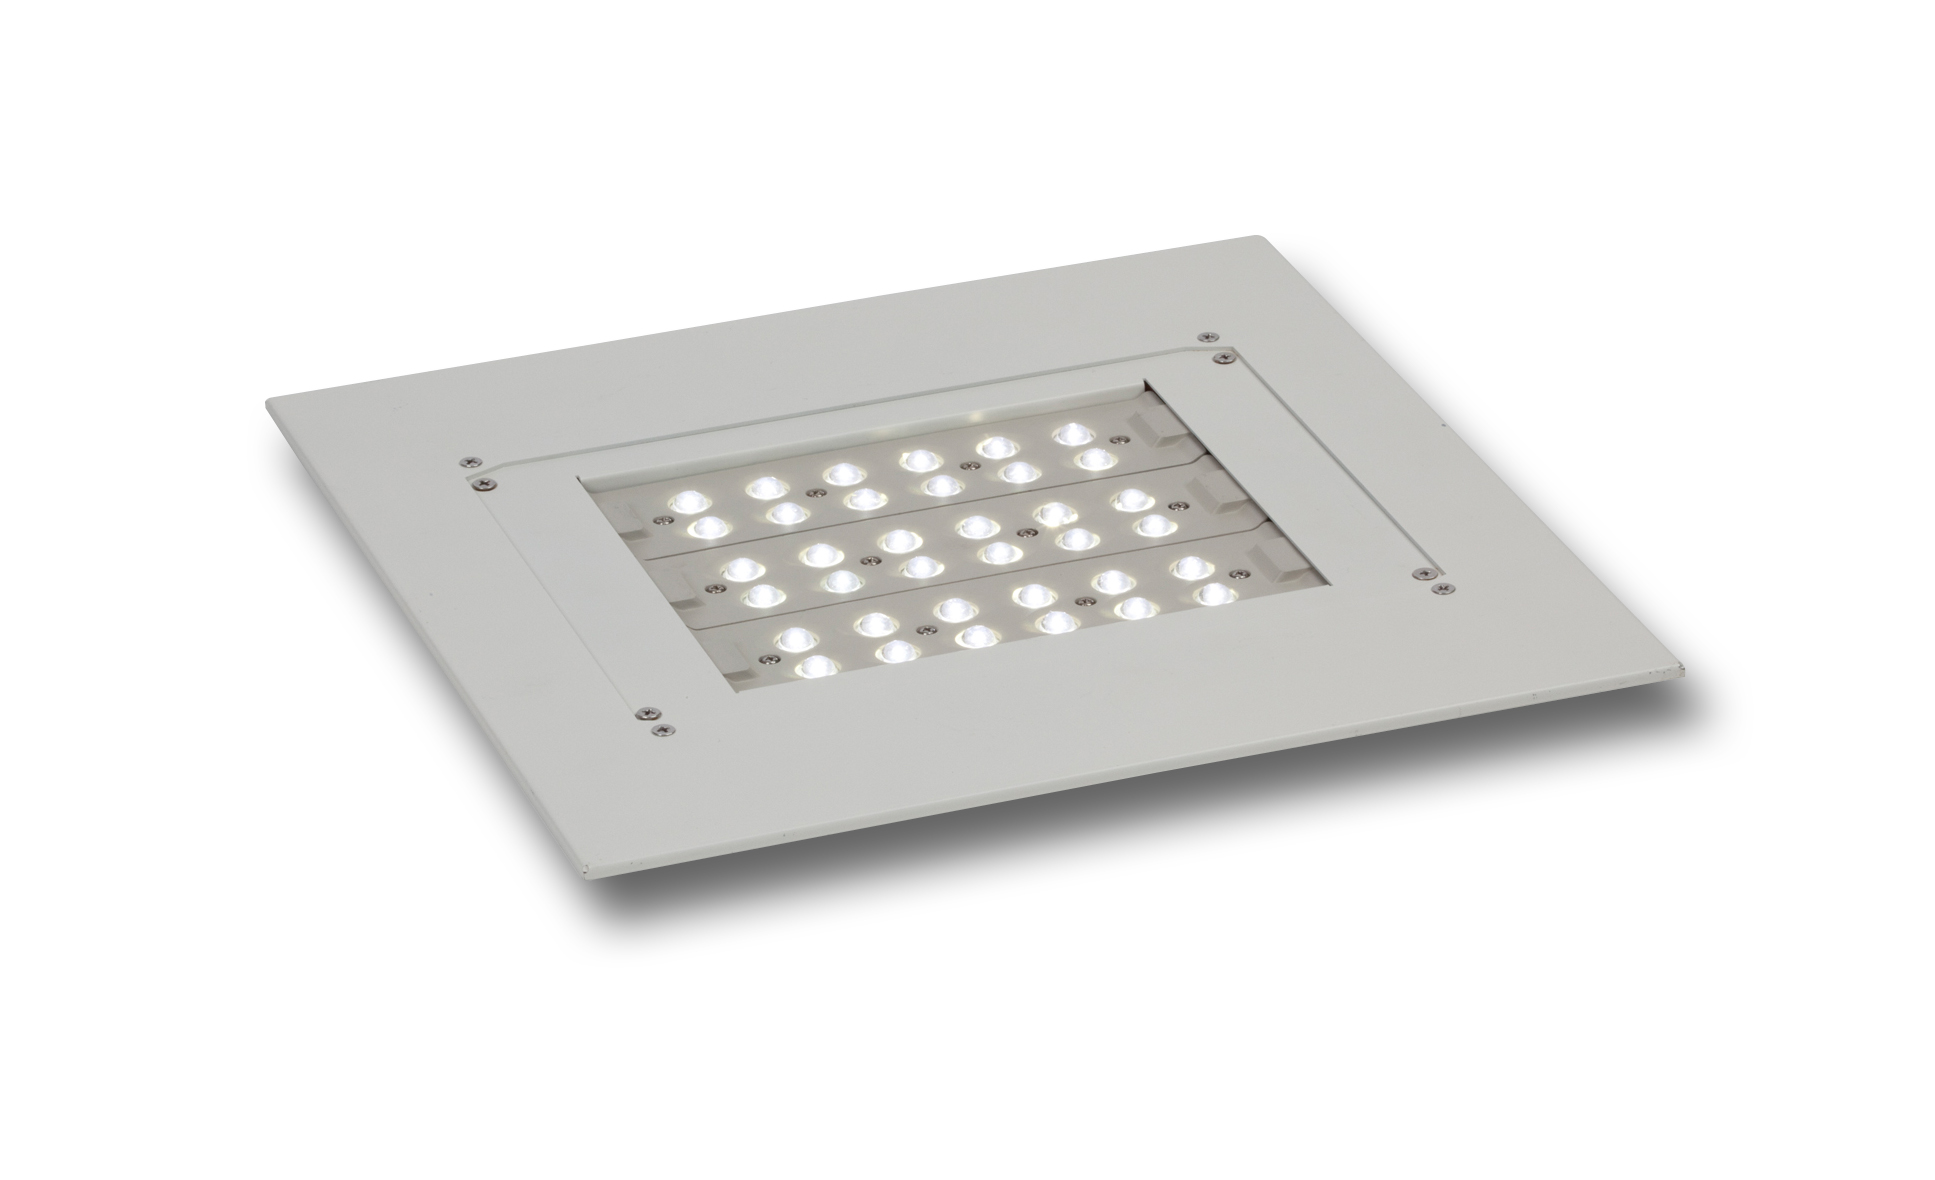 GEu0027s Evolve™ LED Canopy Light  sc 1 st  GE Lighting Pressroom & GEu0027s Evolve™ LED Canopy Light Provides Energy-Efficient Lighting ...